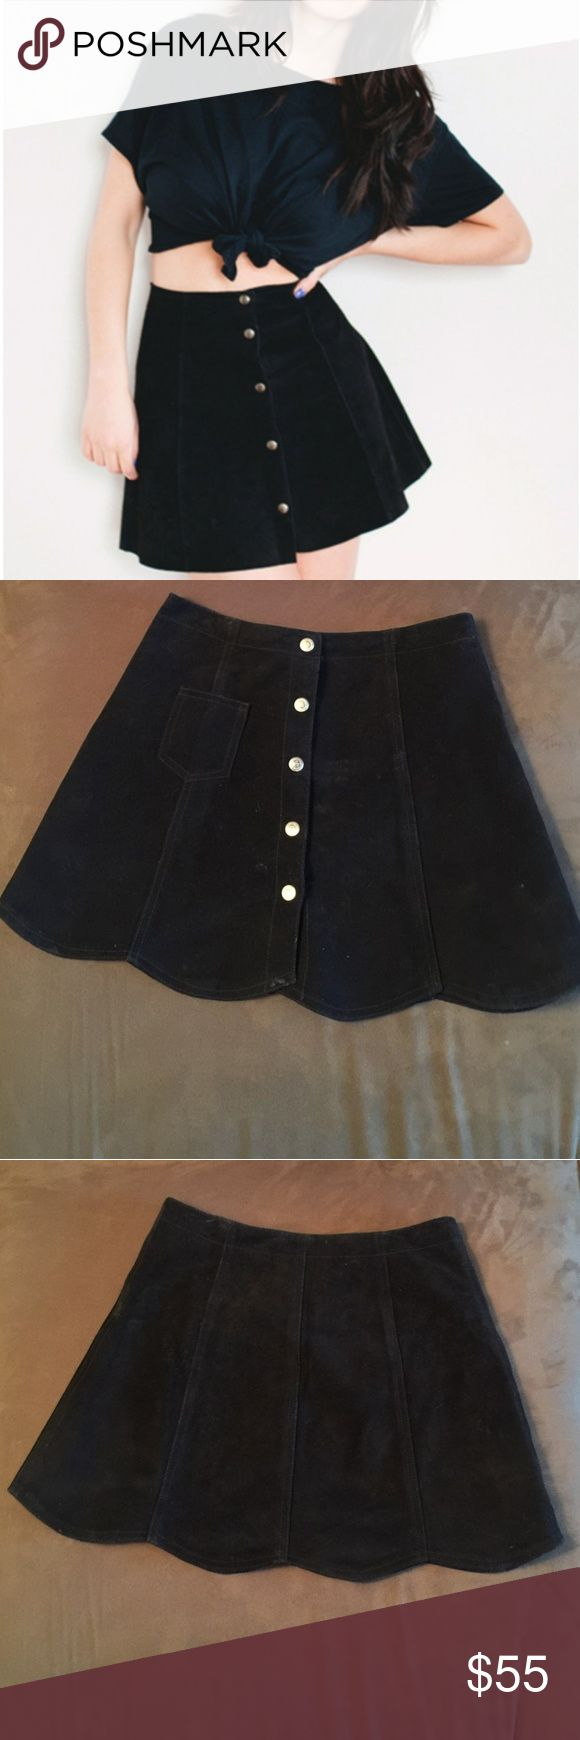 Leather Button Down Mini Skirt 100% Leather Shell Lettuce Cut At The Bottom 5 Snap Buttons Super Cute For Spring/Summer  Willing to Bundle To Save You Money Functional Front Pocket  From Pet/Smoke Free Home Dry Cleaner Only Size 5 Skirts Mini